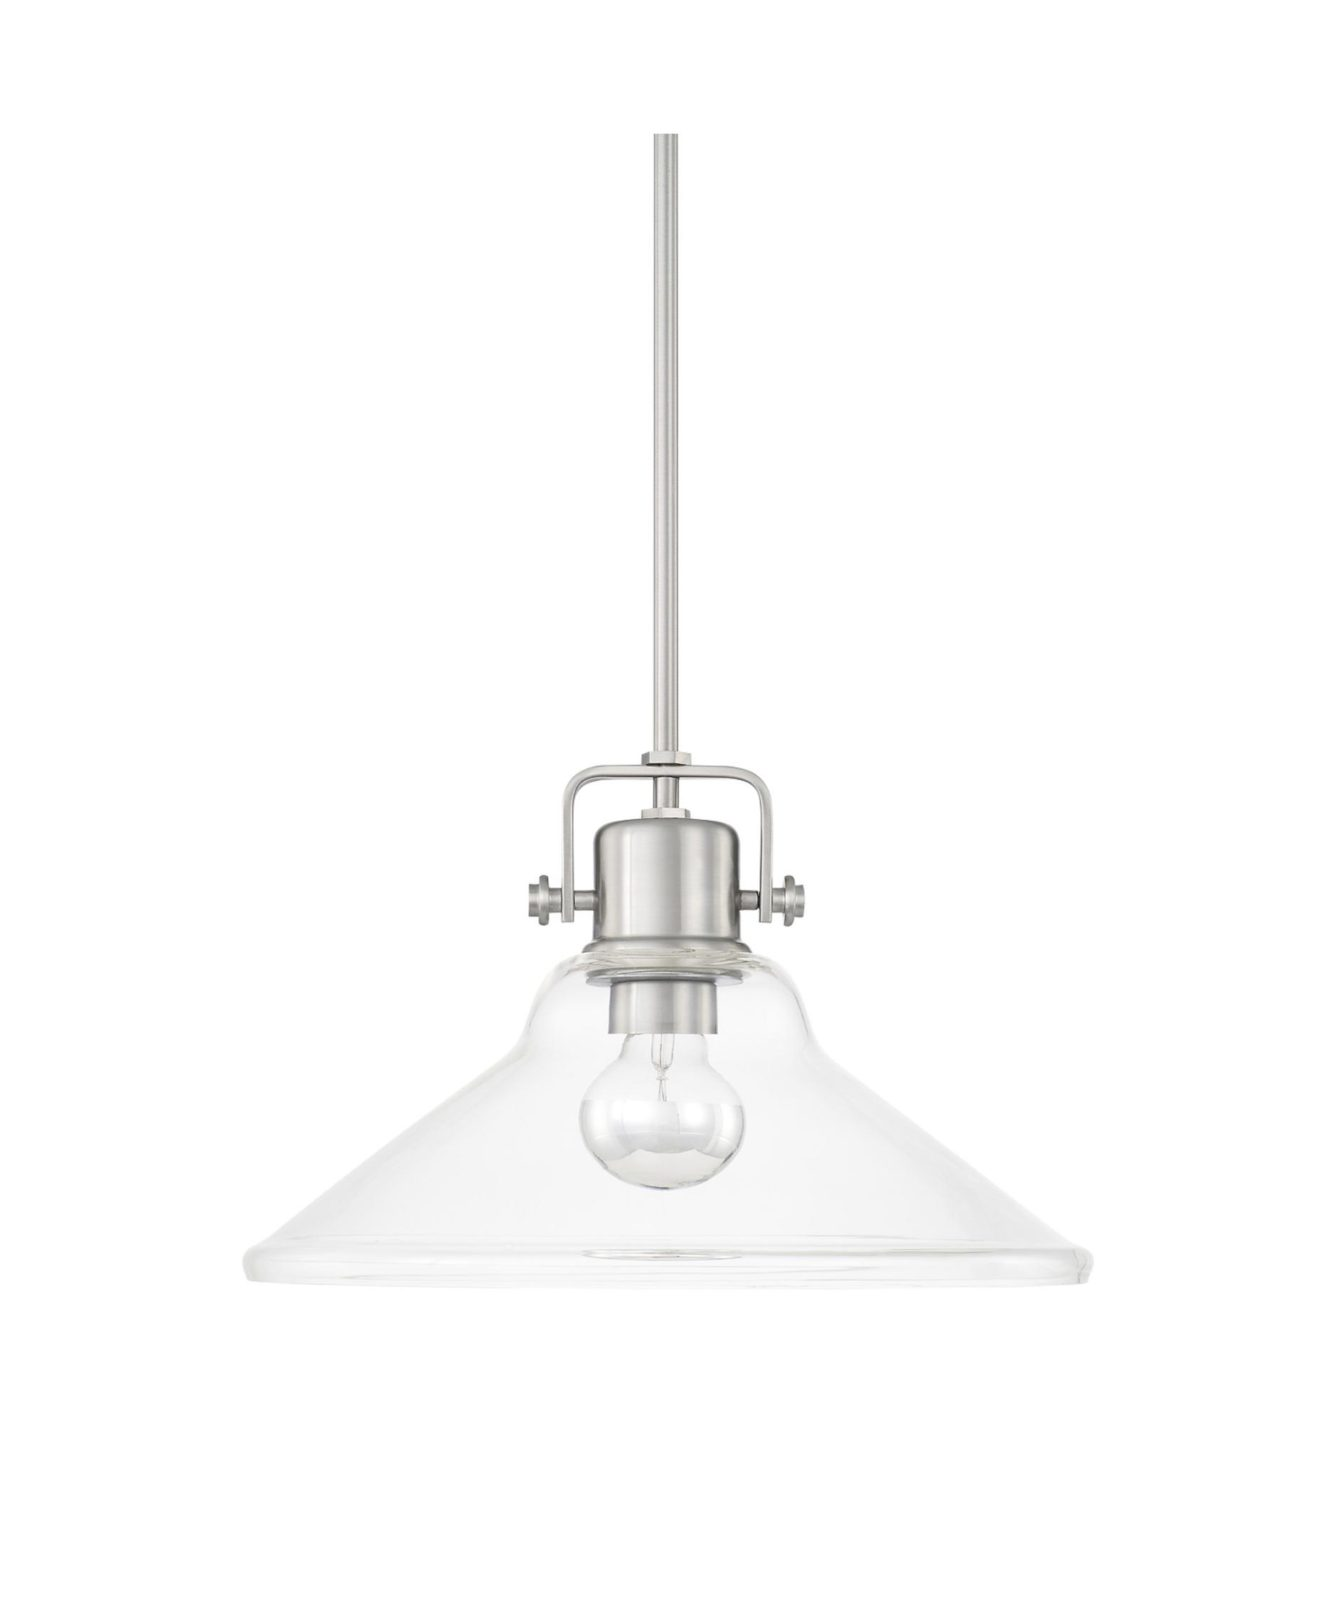 Pendant Lighting Brushed Nickel 16 1 Light Large Pendant In Brushed Nickel Pillar